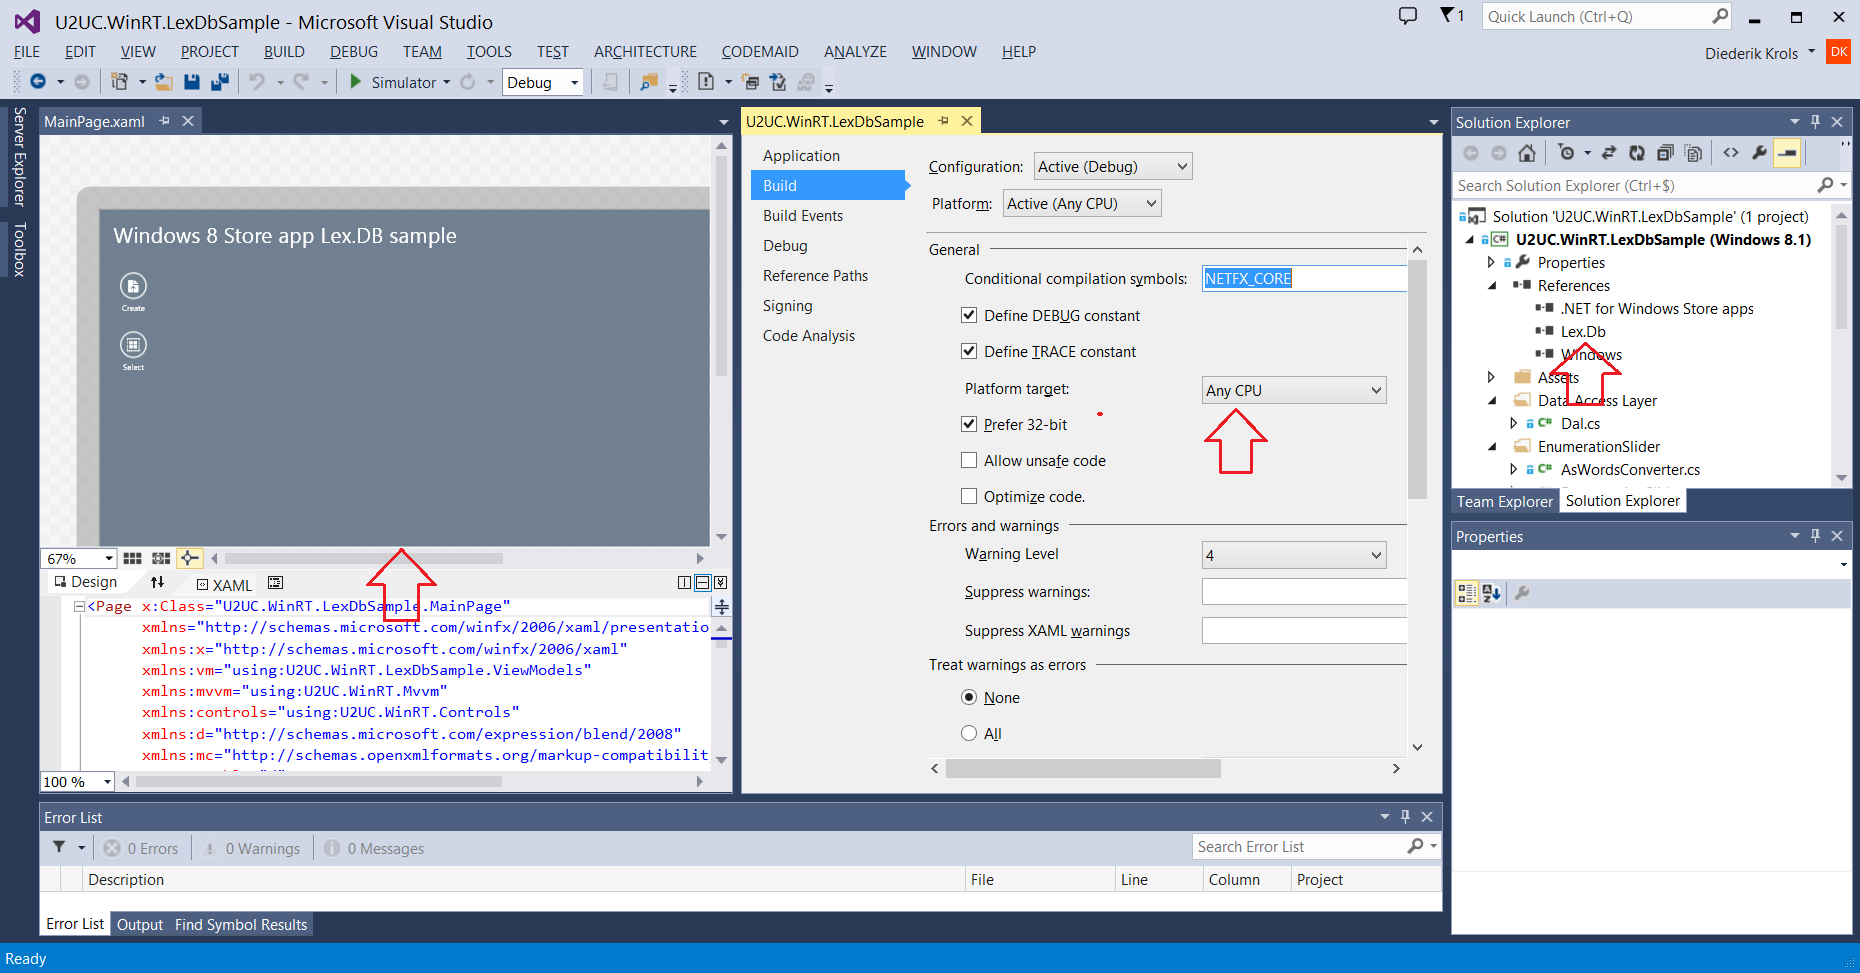 how to create local database in visual studio 2013